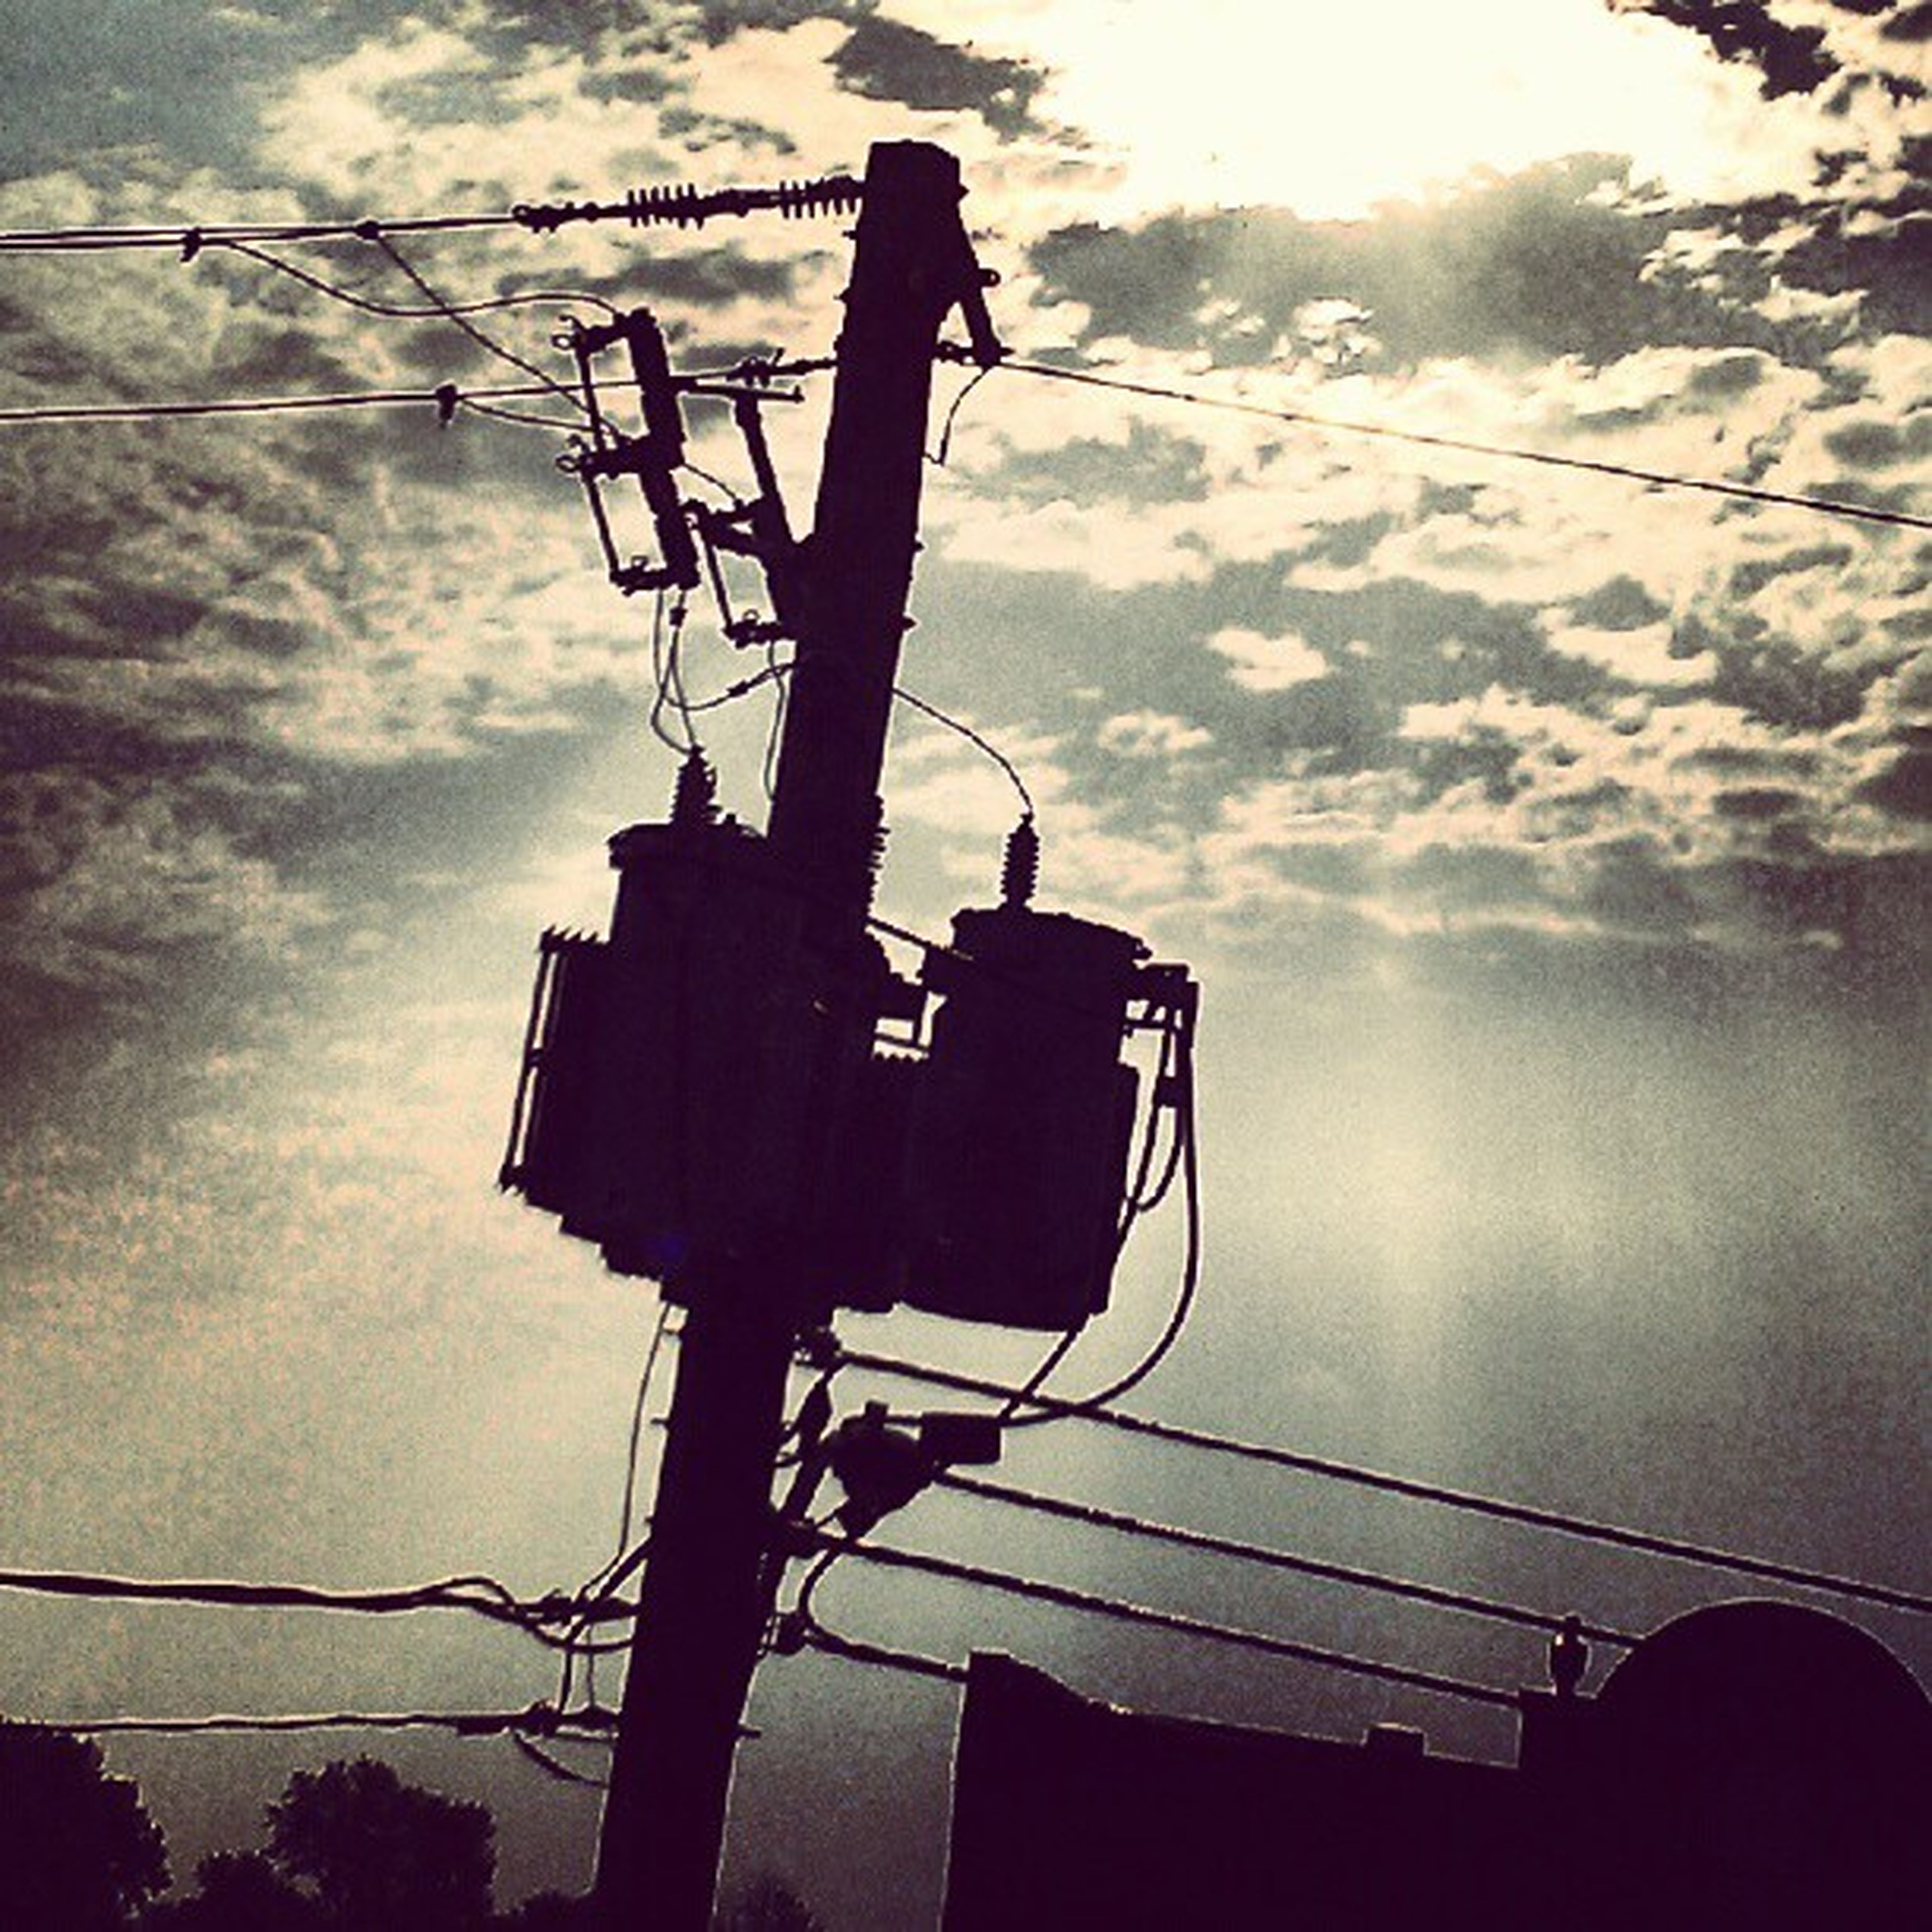 power line, low angle view, electricity pylon, electricity, sky, silhouette, power supply, cable, fuel and power generation, technology, connection, cloud - sky, cloudy, dusk, built structure, weather, power cable, architecture, crane - construction machinery, outdoors